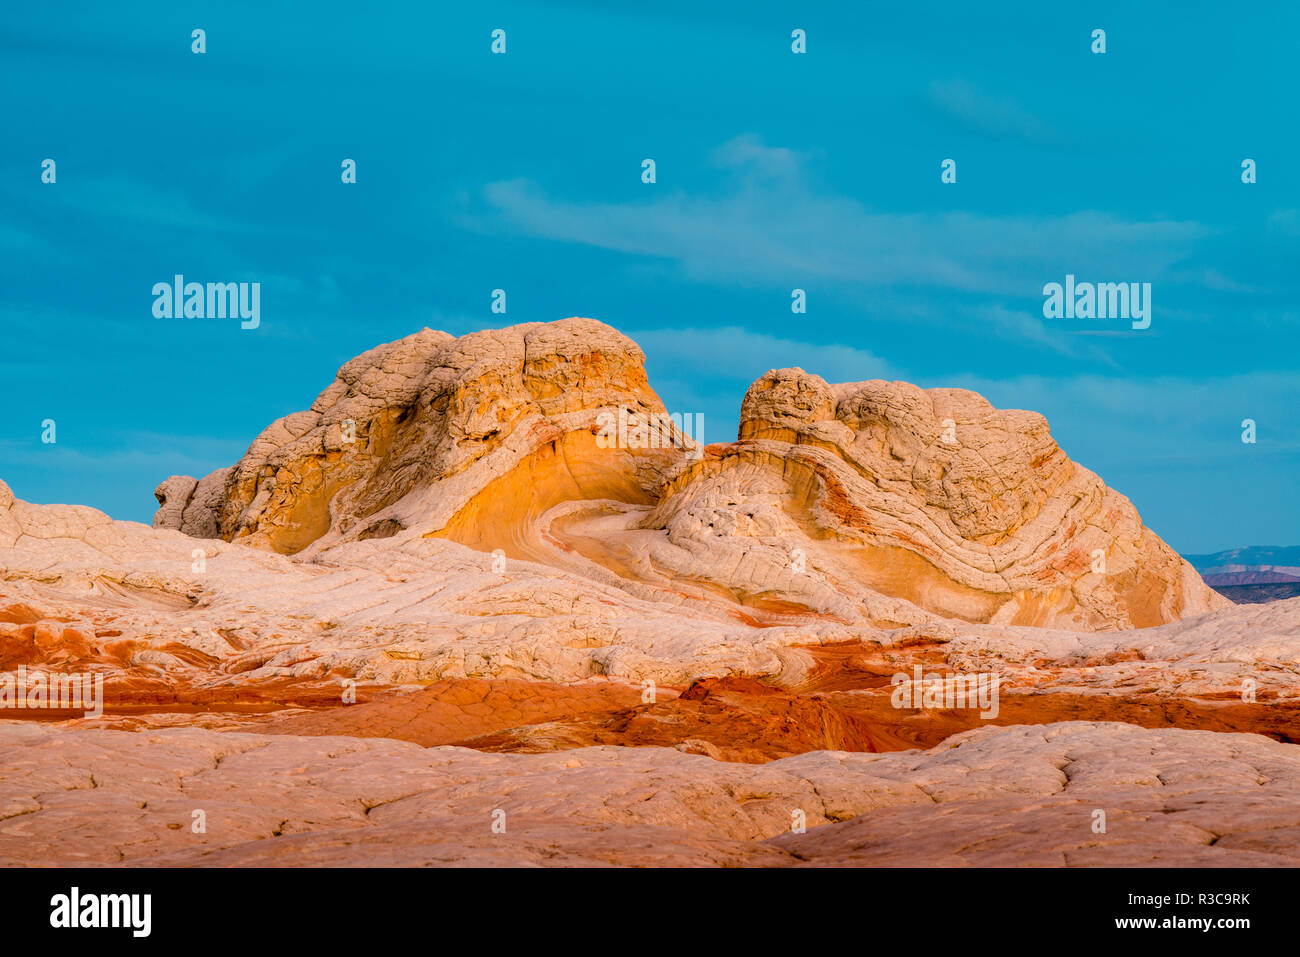 Sunrise at Vermillion Cliffs, White Pockets Wilderness, Bureau of Land Management, Arizona - Stock Image